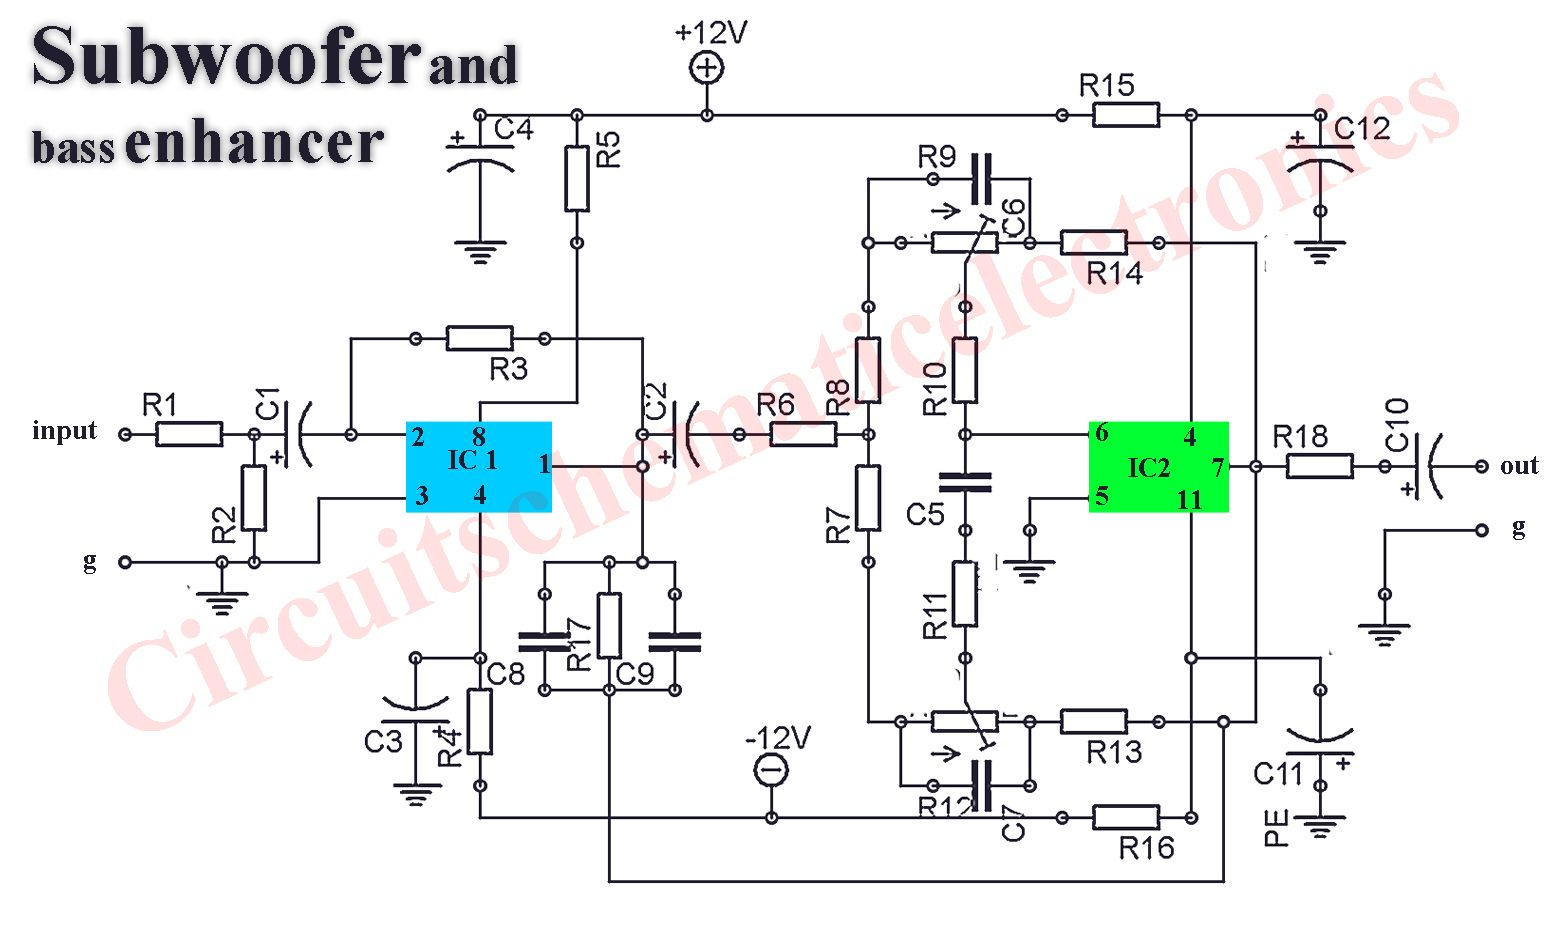 Subwoofer booster circuit with PCB Layout in 2019 | Hubby Project | Diy amplifier, Audio